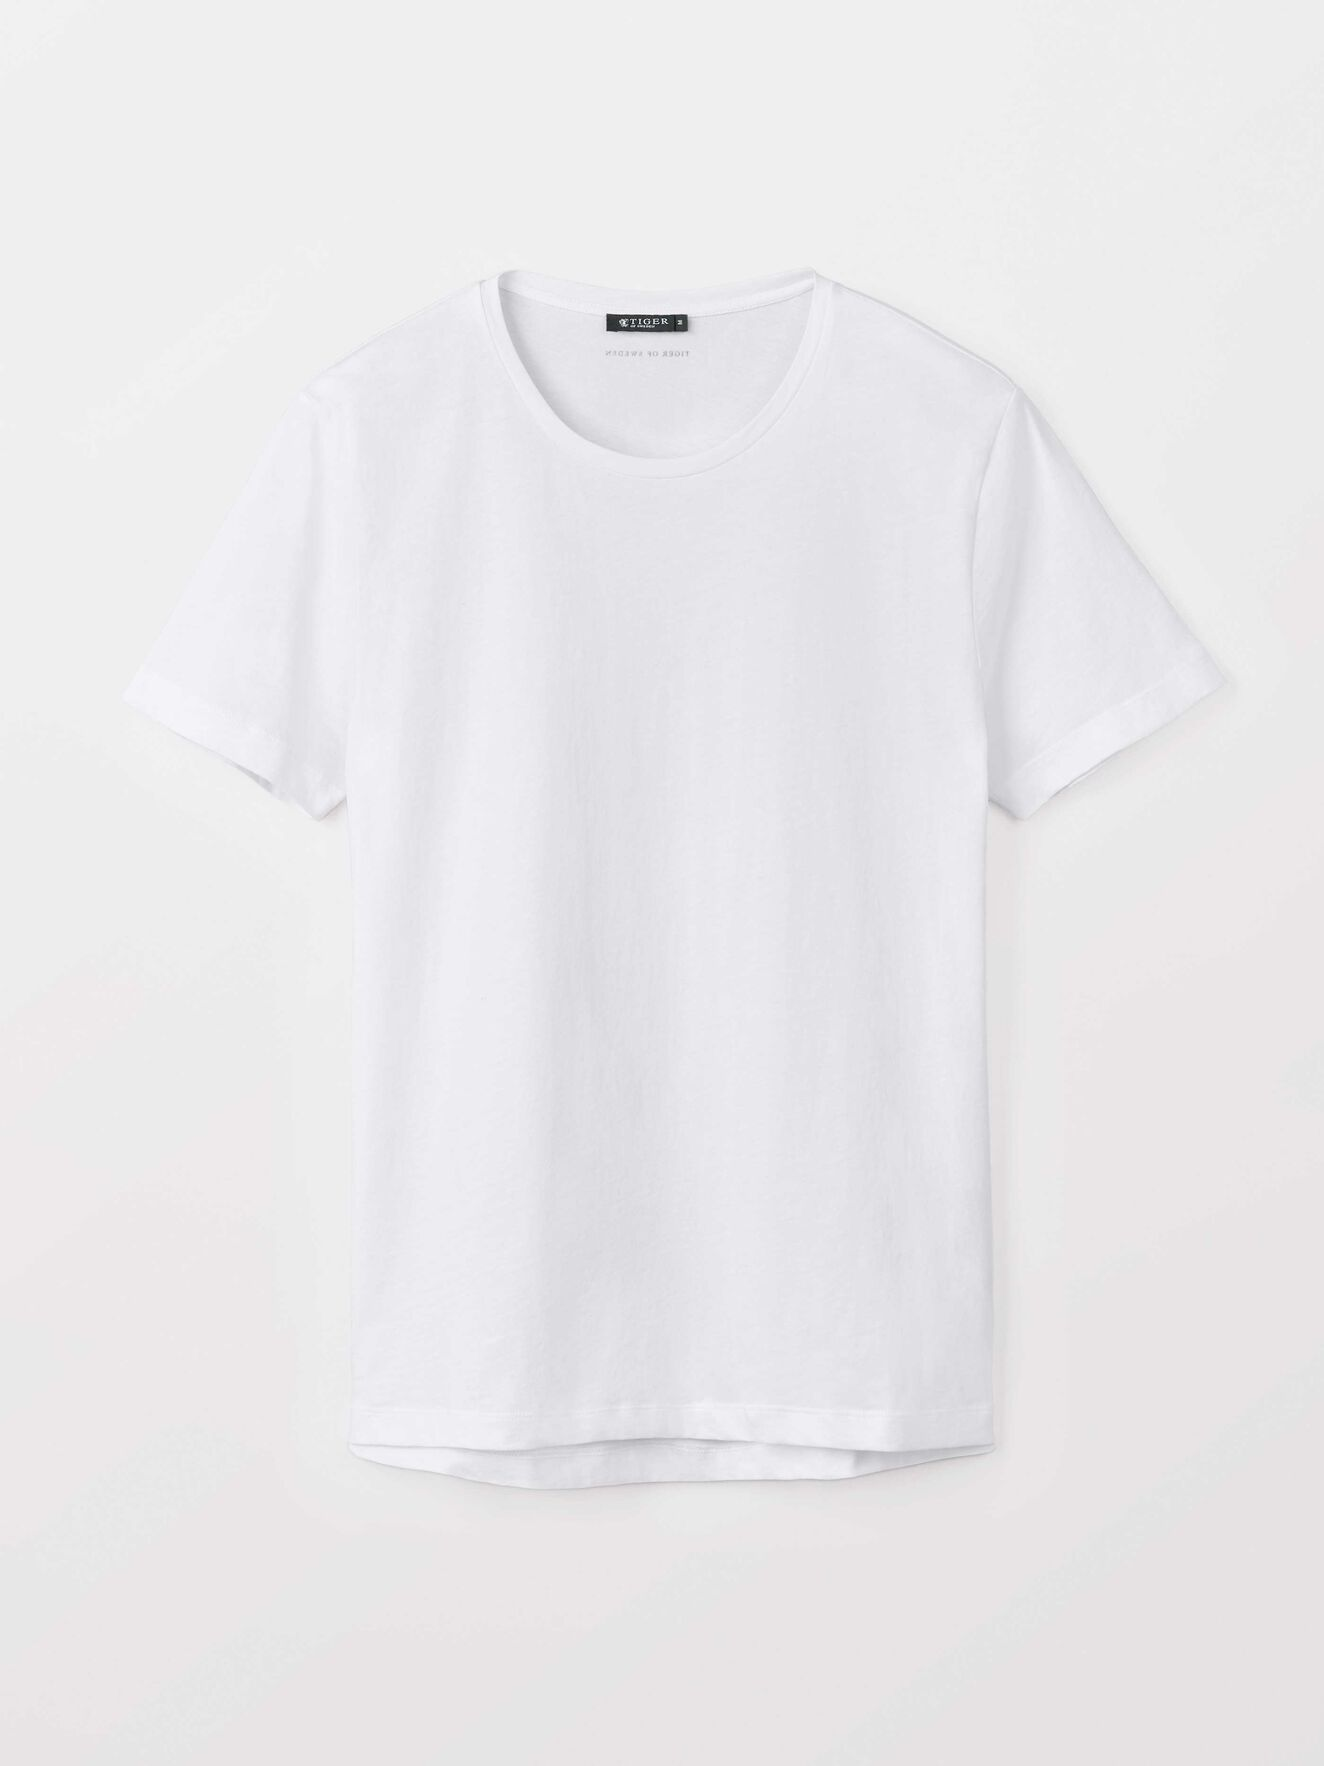 Legacy T-Shirt in Bright White from Tiger of Sweden